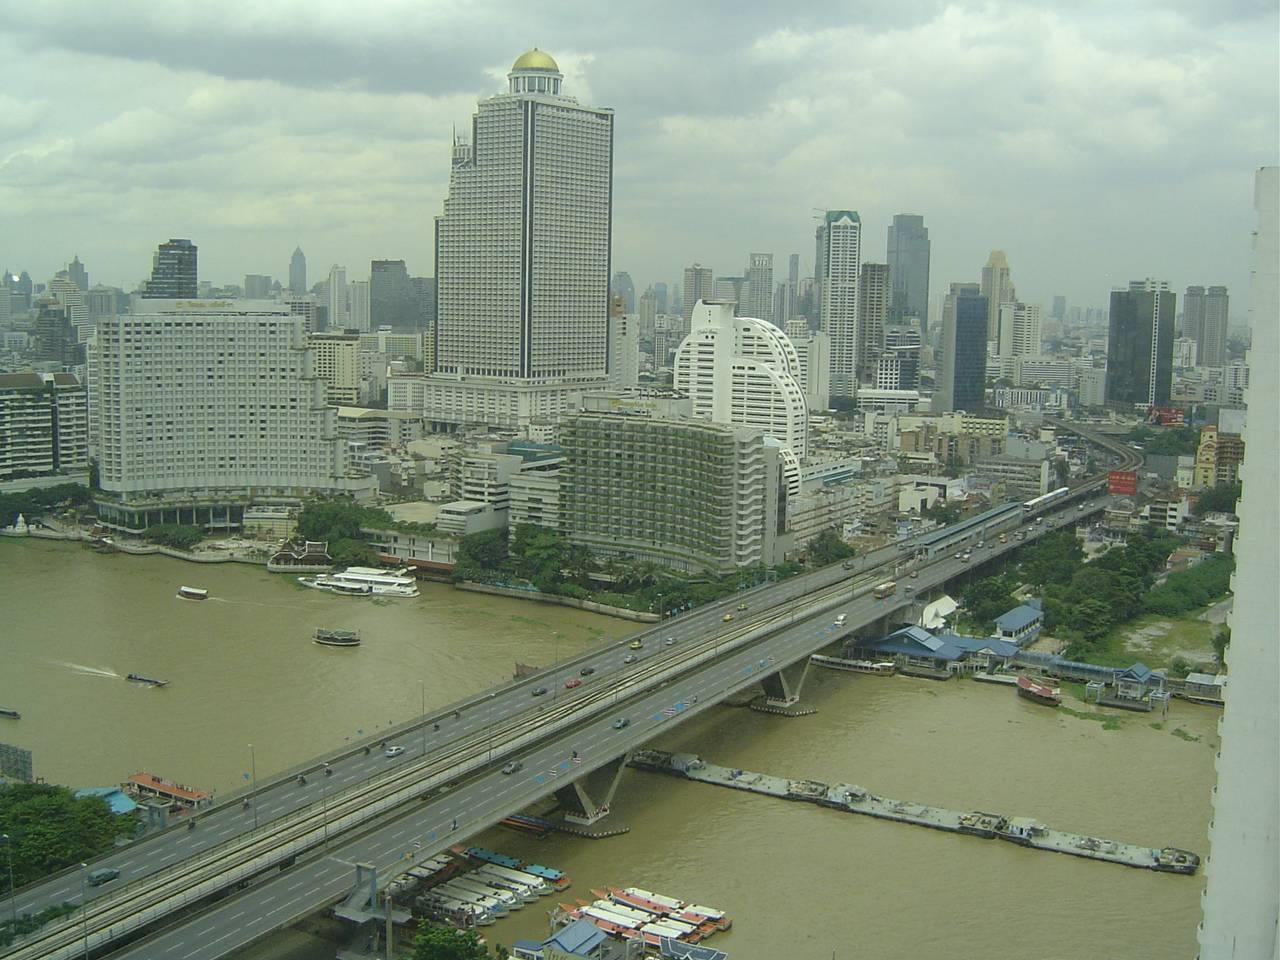 Quality Life Property Agency's For Rent Condo Baan Chao Praya Sathorn 1 Bedroom 1 Bath High Floor Top View 8